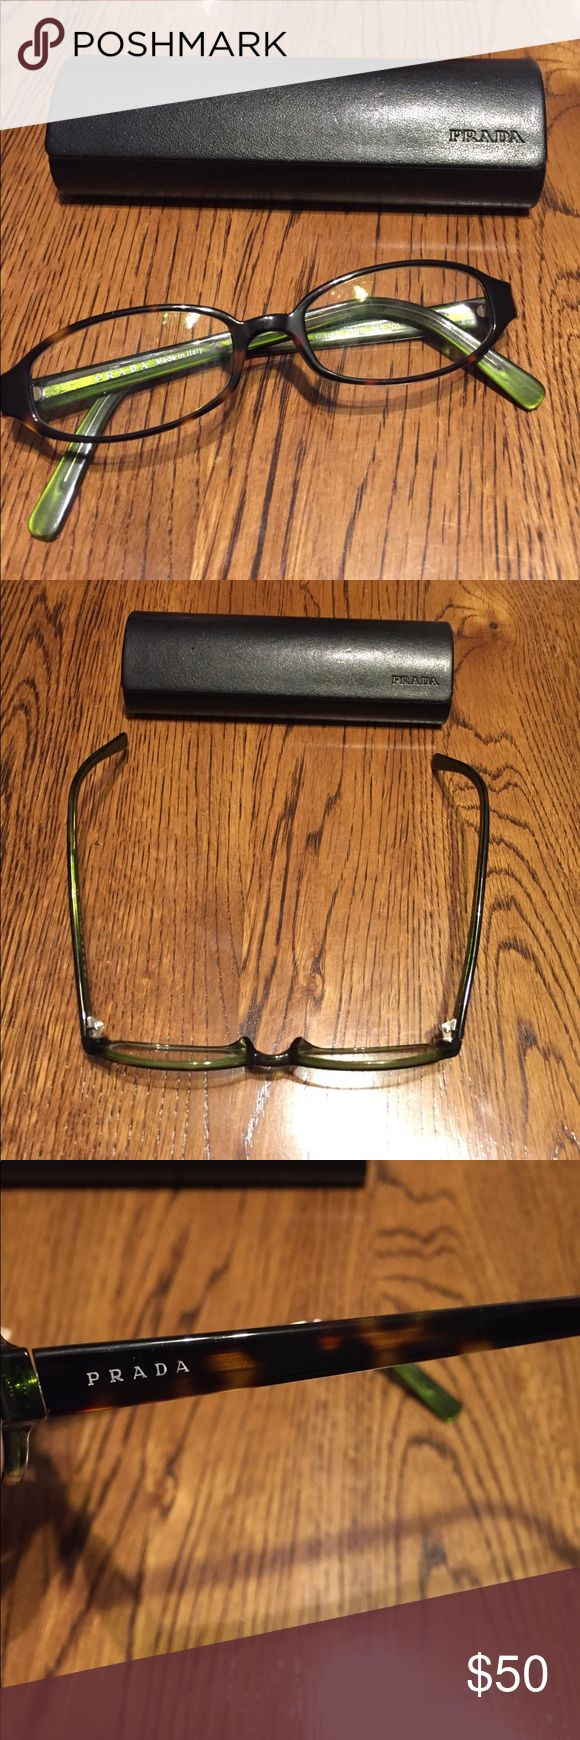 PRADA Eyeglass lenses Just need to be tightened - excellent condition otherwise! Accessories Glasses